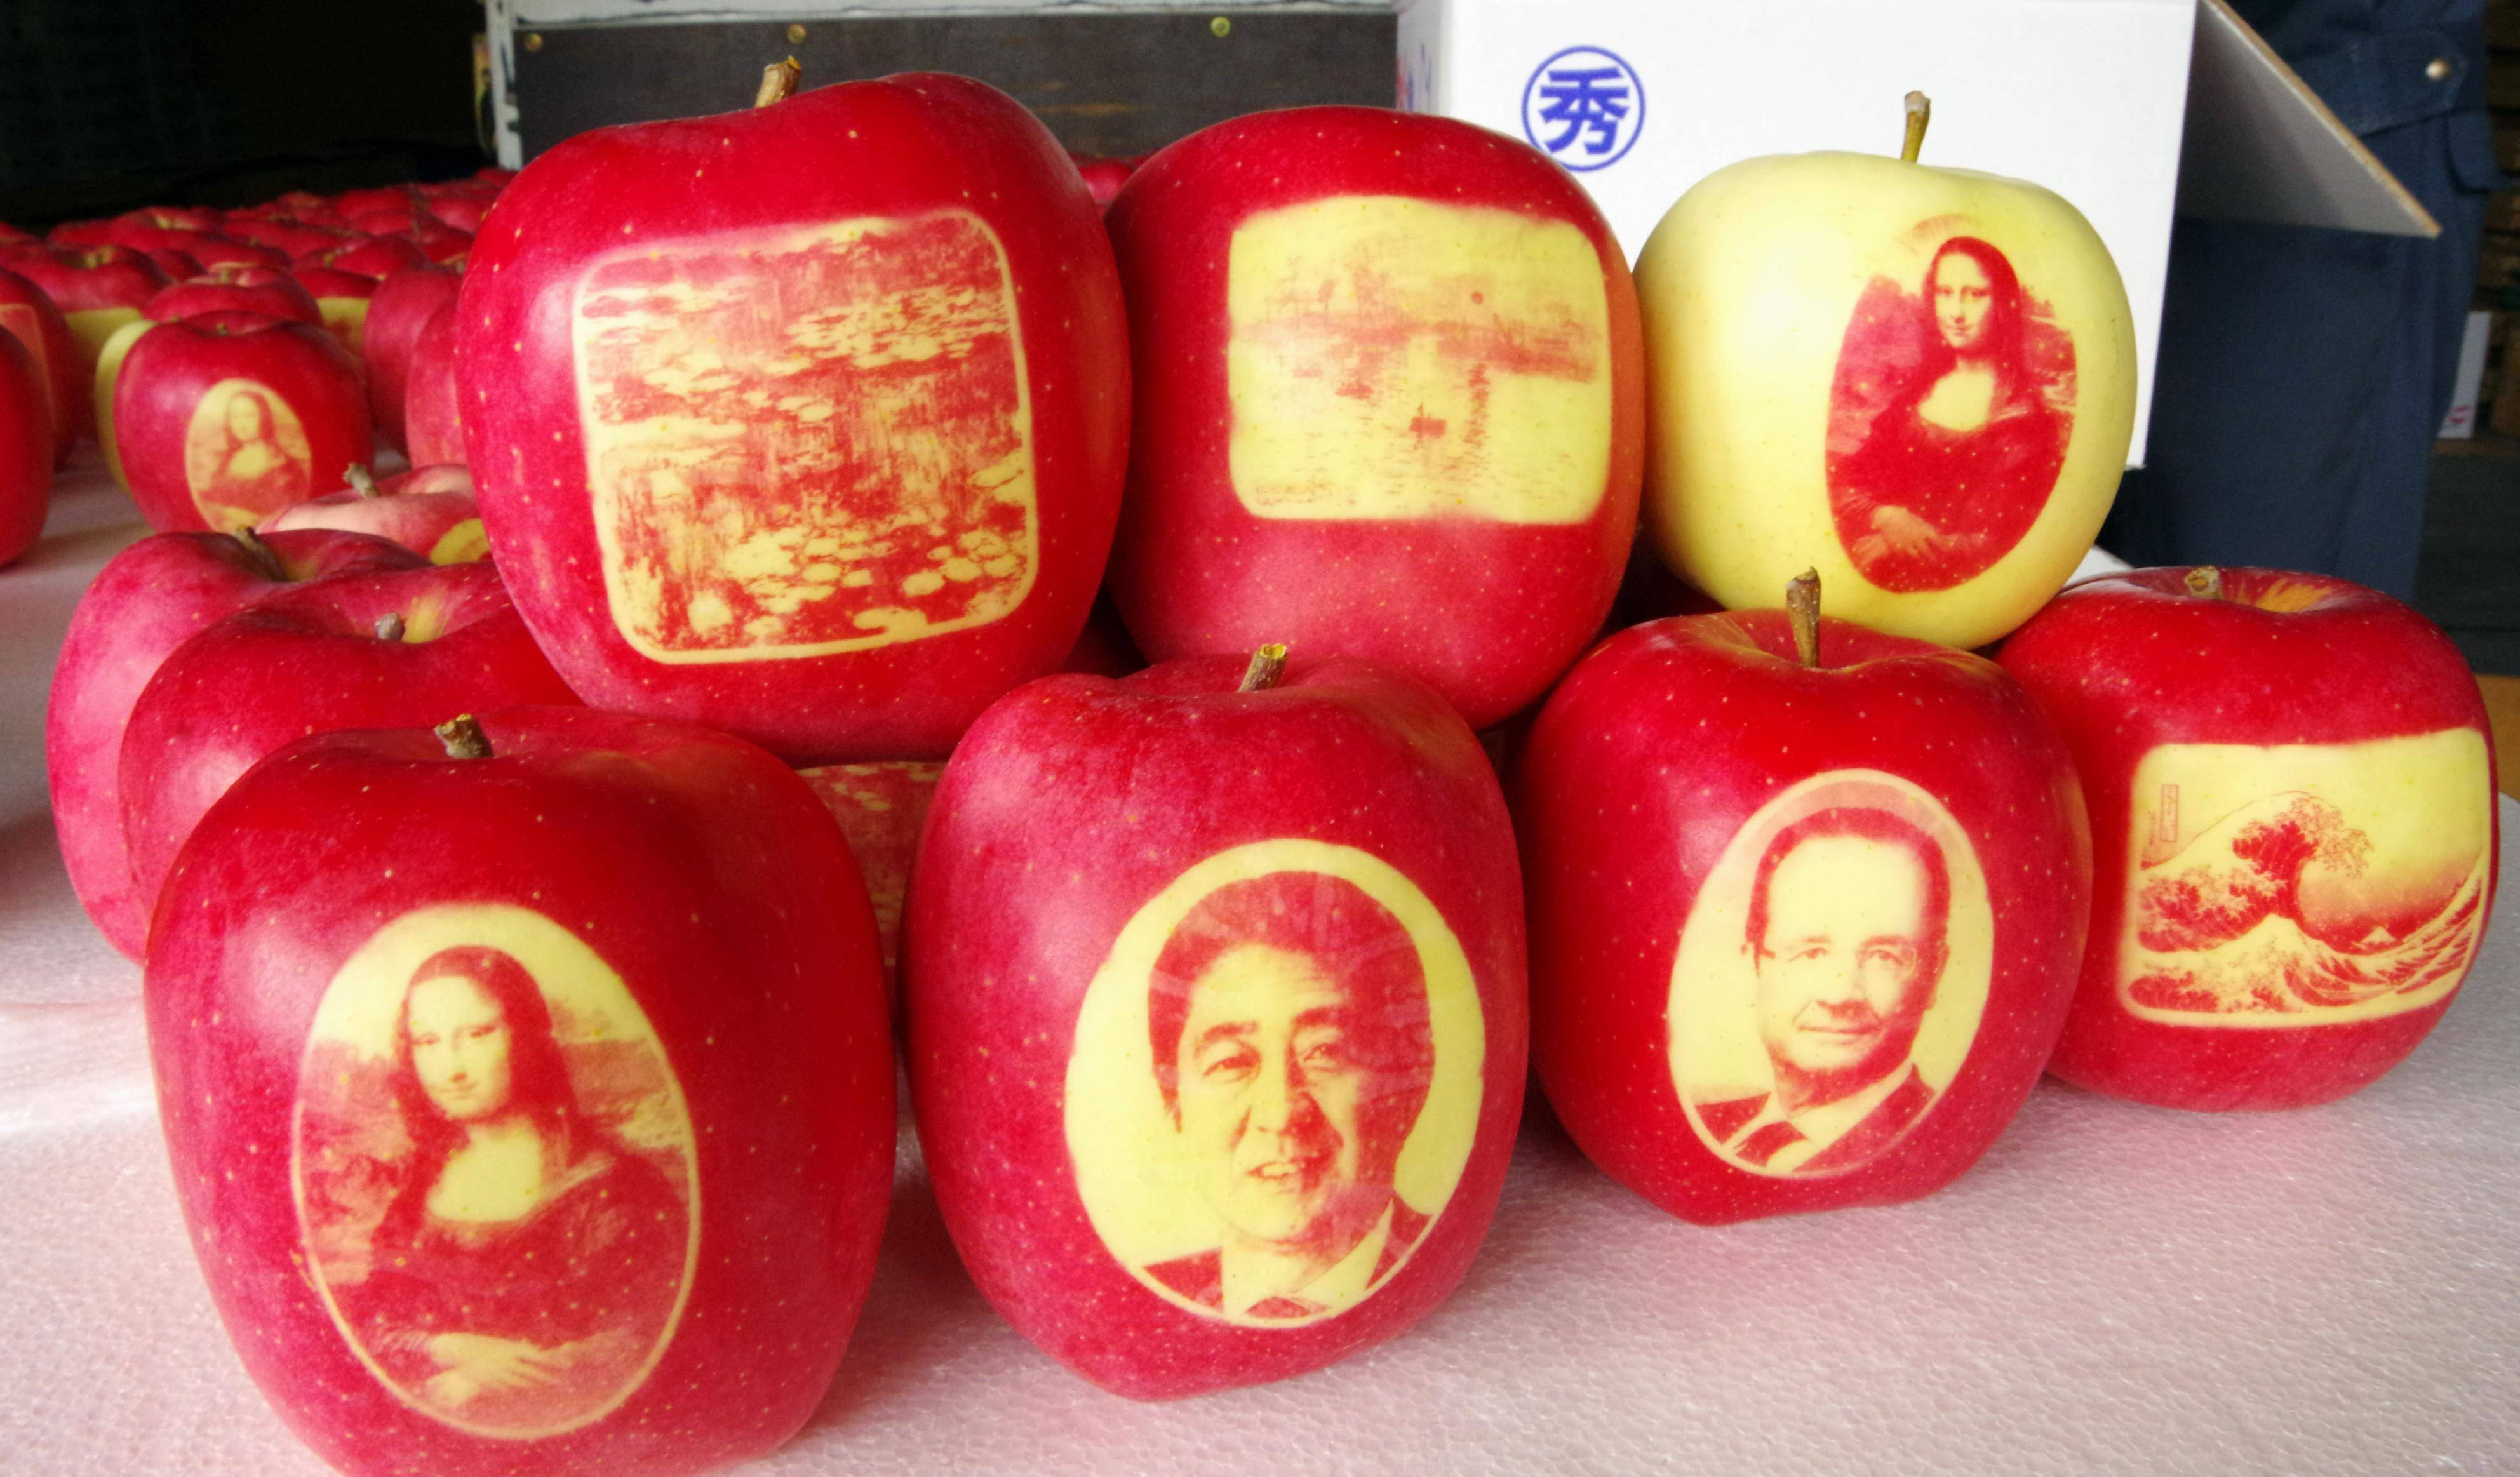 Decorated apples to be sent to French President Photo taken Oct. 27, 2016, in the northeastern Japan city of Hirosaki shows apples decorated with portraits of French President Francois Hollande (2nd from bottom R) and Japanese Prime Minister Shinzo Abe (2nd from bottom L). Some of the apples will be sent to Hollande. PUBLICATIONxINxGERxSUIxAUTxHUNxONLY decorated Apples to Be Sent to French President Photo Taken OCT 27 2016 in The Northeastern Japan City of Hirosaki Shows Apples decorated With Portraits of French President François Hollande 2nd from Bottom r and Japanese Prime Ministers Shinzo ABE 2nd from Bottom l Some of The Apples will Be Sent to Hollande PUBLICATIONxINxGERxSUIxAUTxHUNxONLY